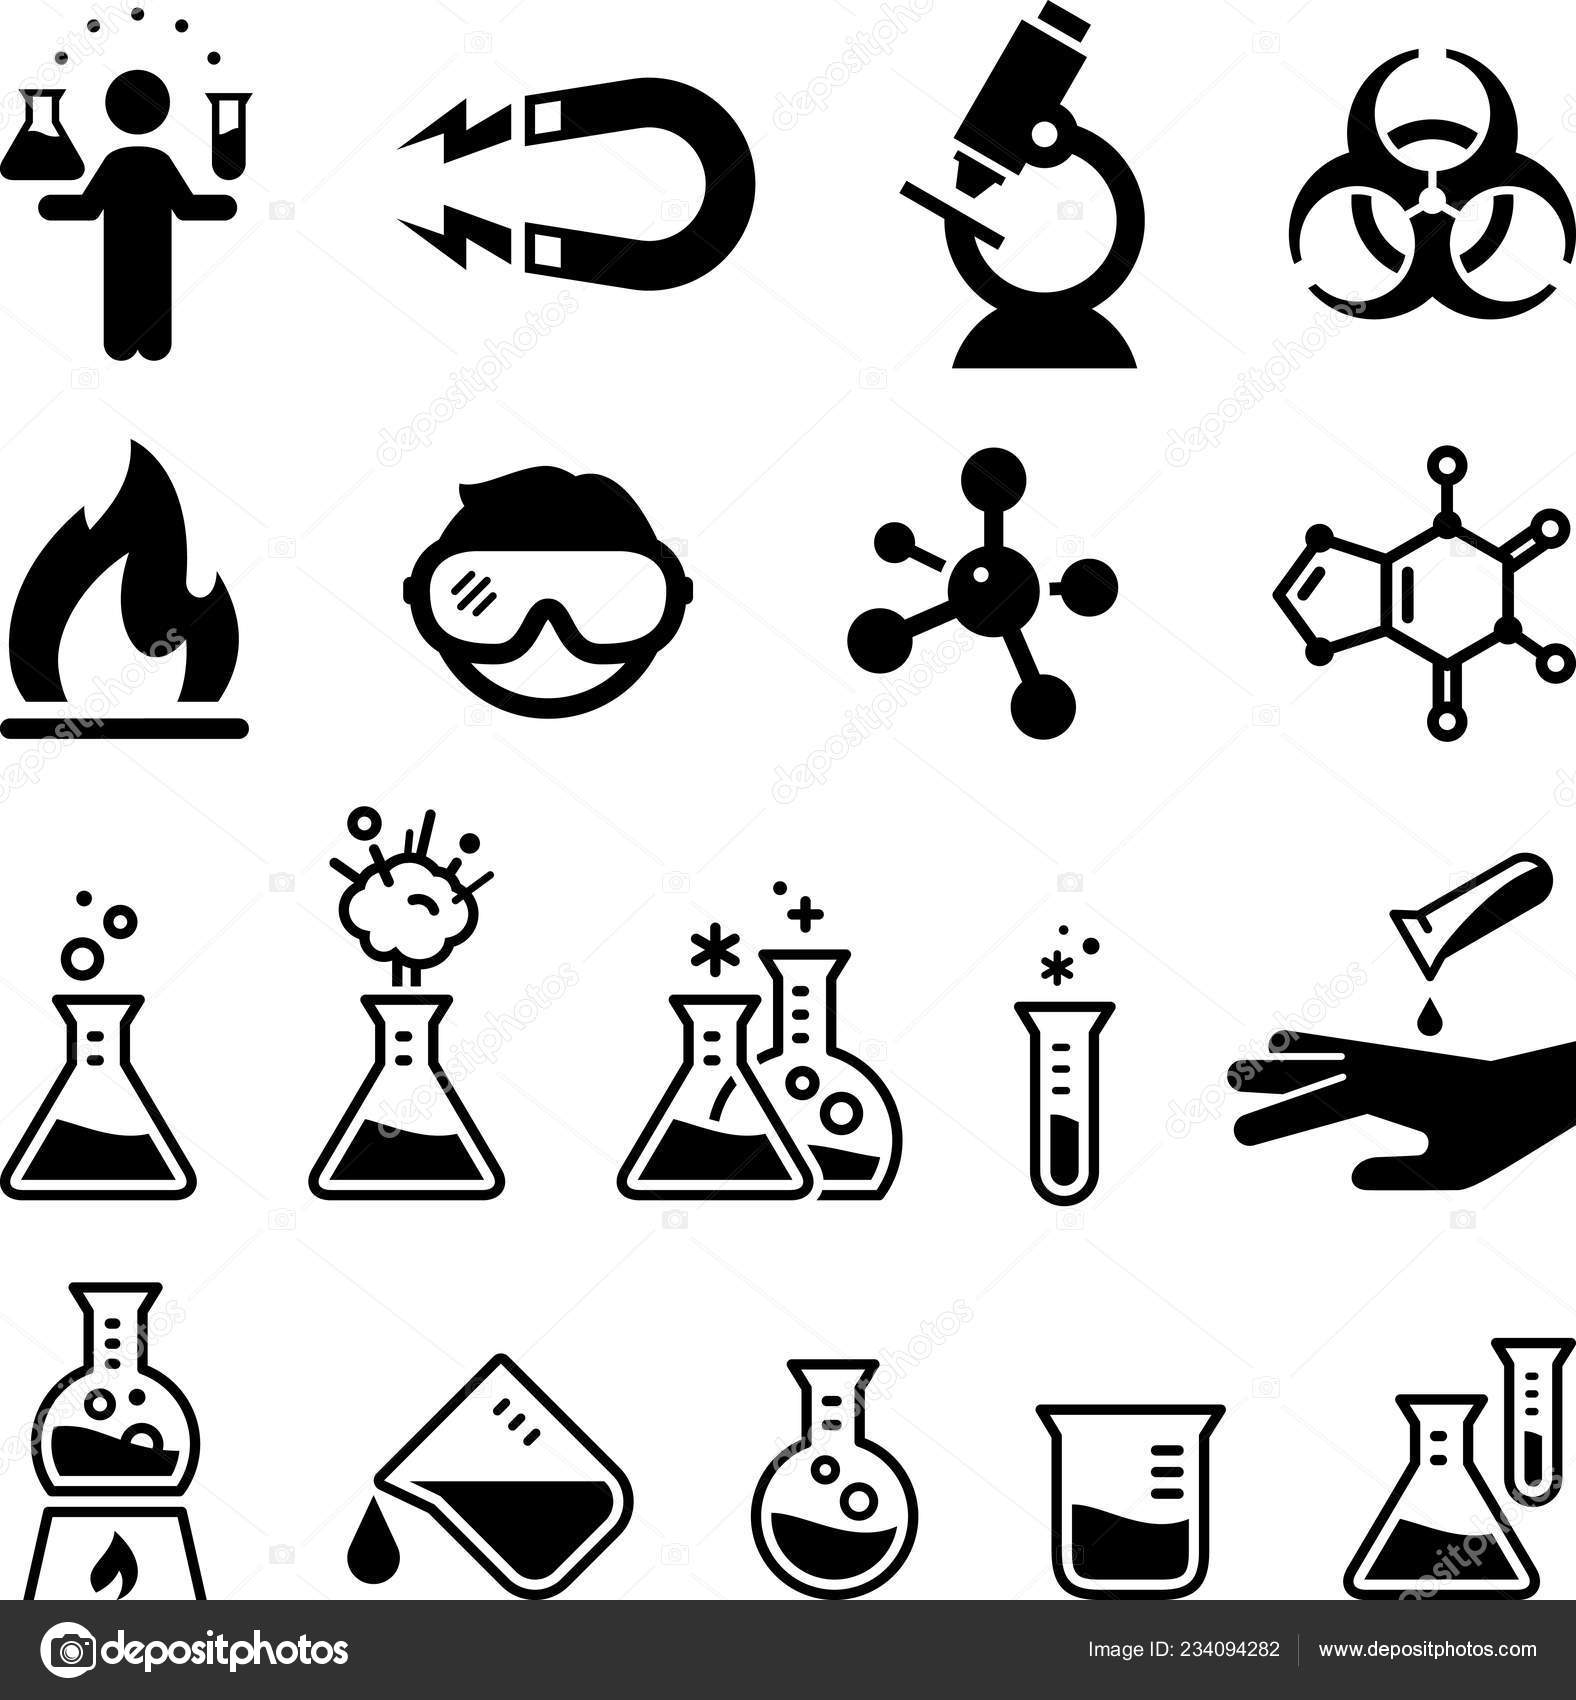 Clipart Forensic Science Science Laboratory Chemist Vector Icons Stock Vector C Popicon 234094282